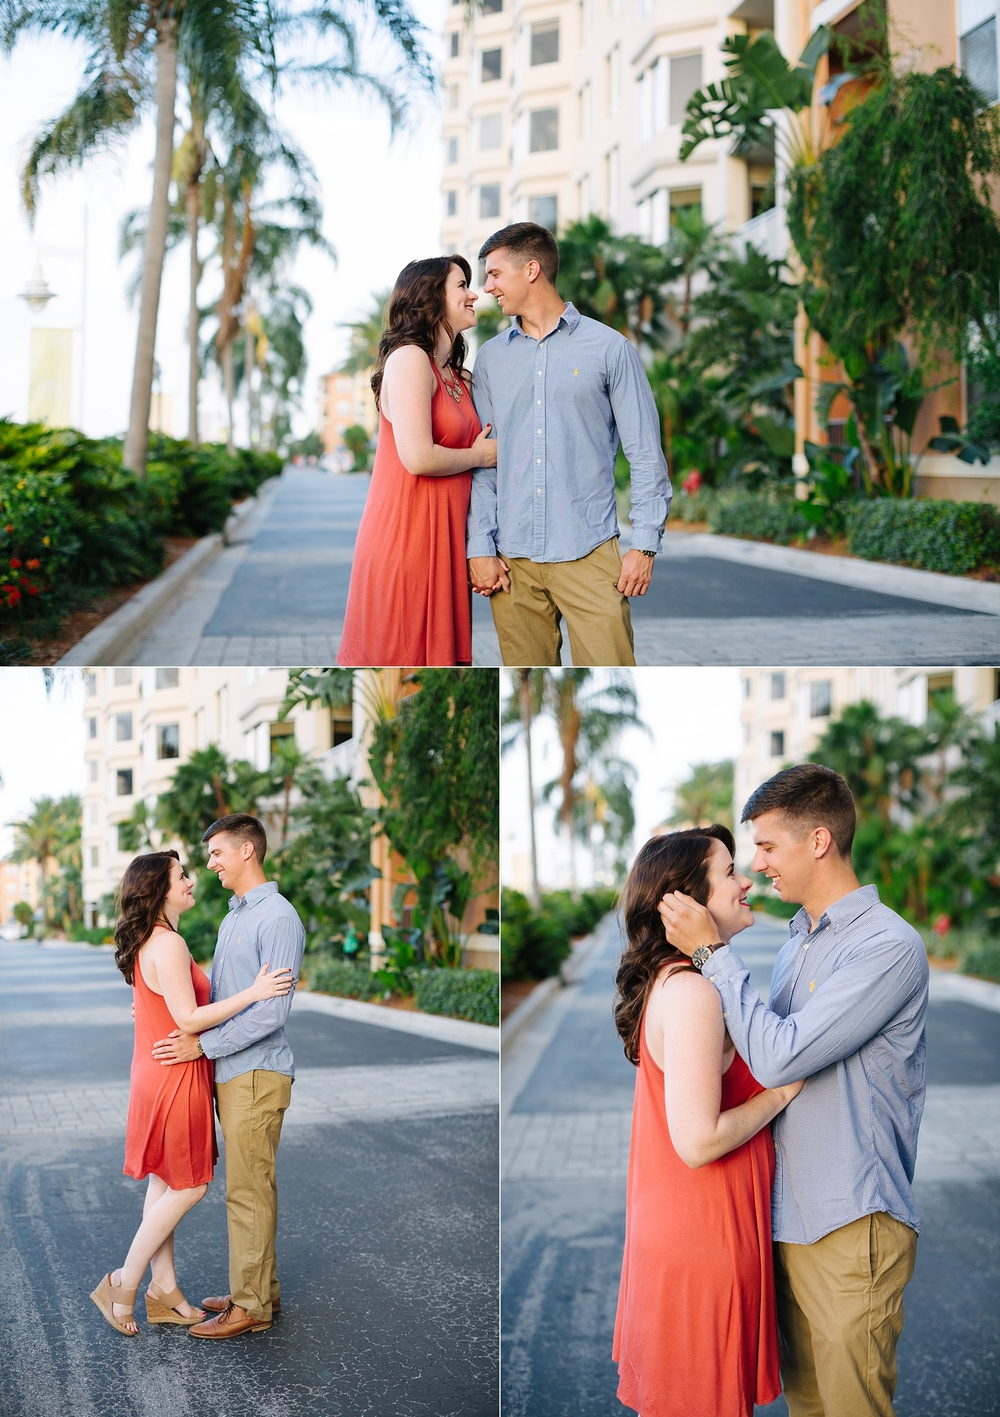 conor mikaela harbour island tampa engagement session jake and katie_001